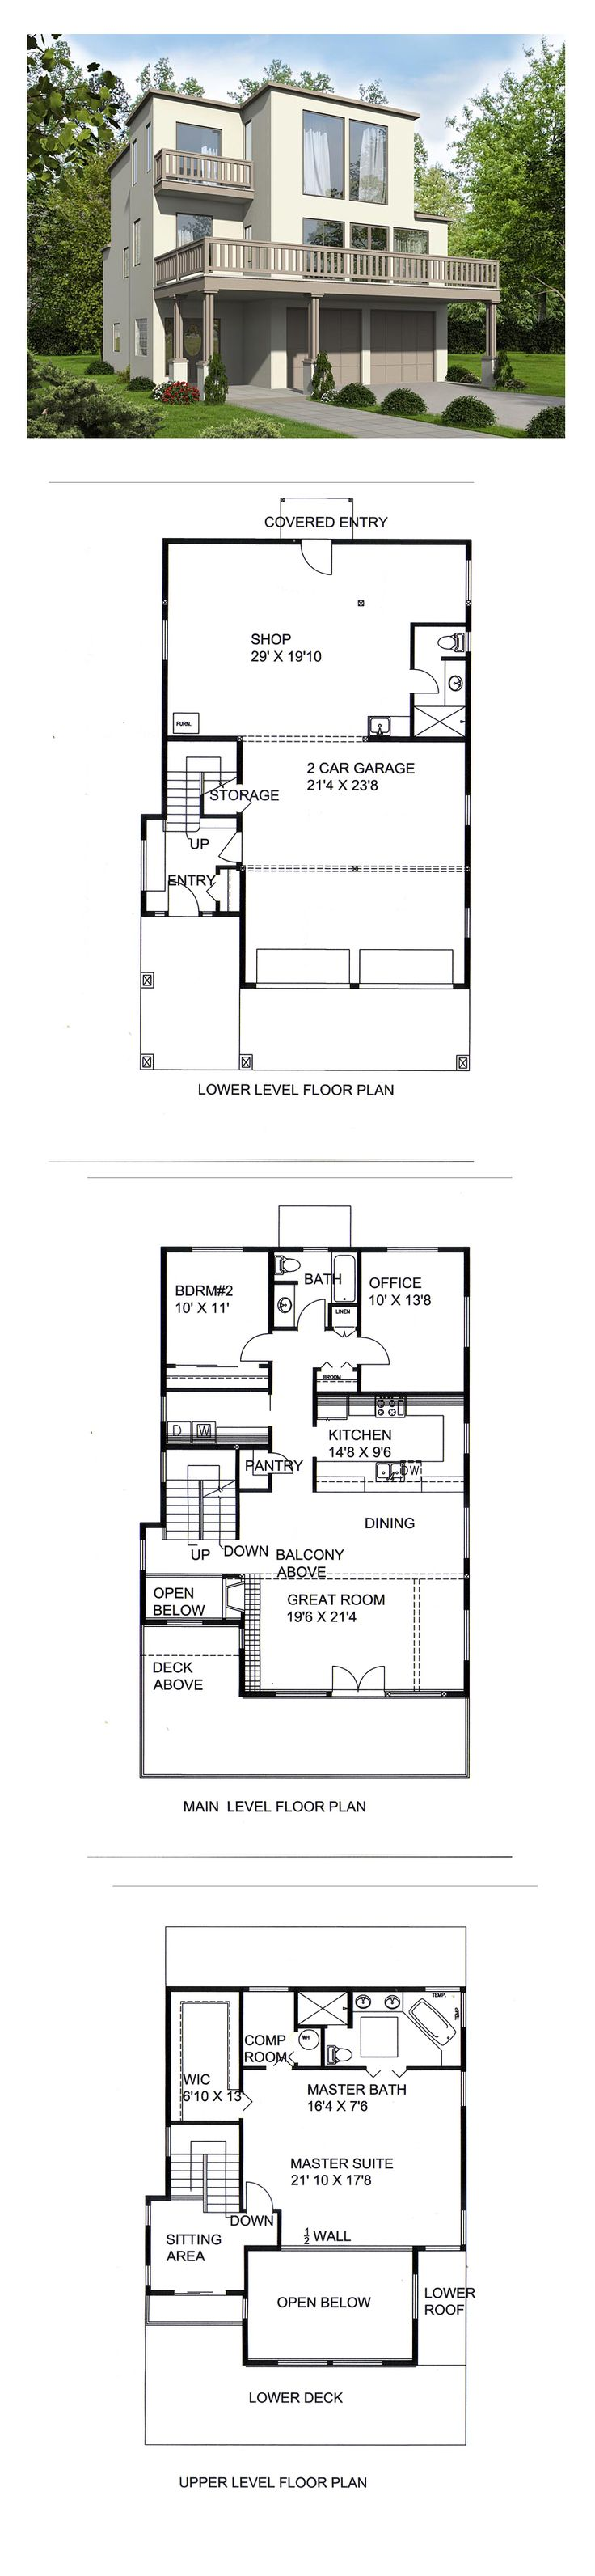 New House Plan 85258 | Total Living Area: 2231 sq. ft., 2 bedrooms and 2 bathrooms. #newhouseplan